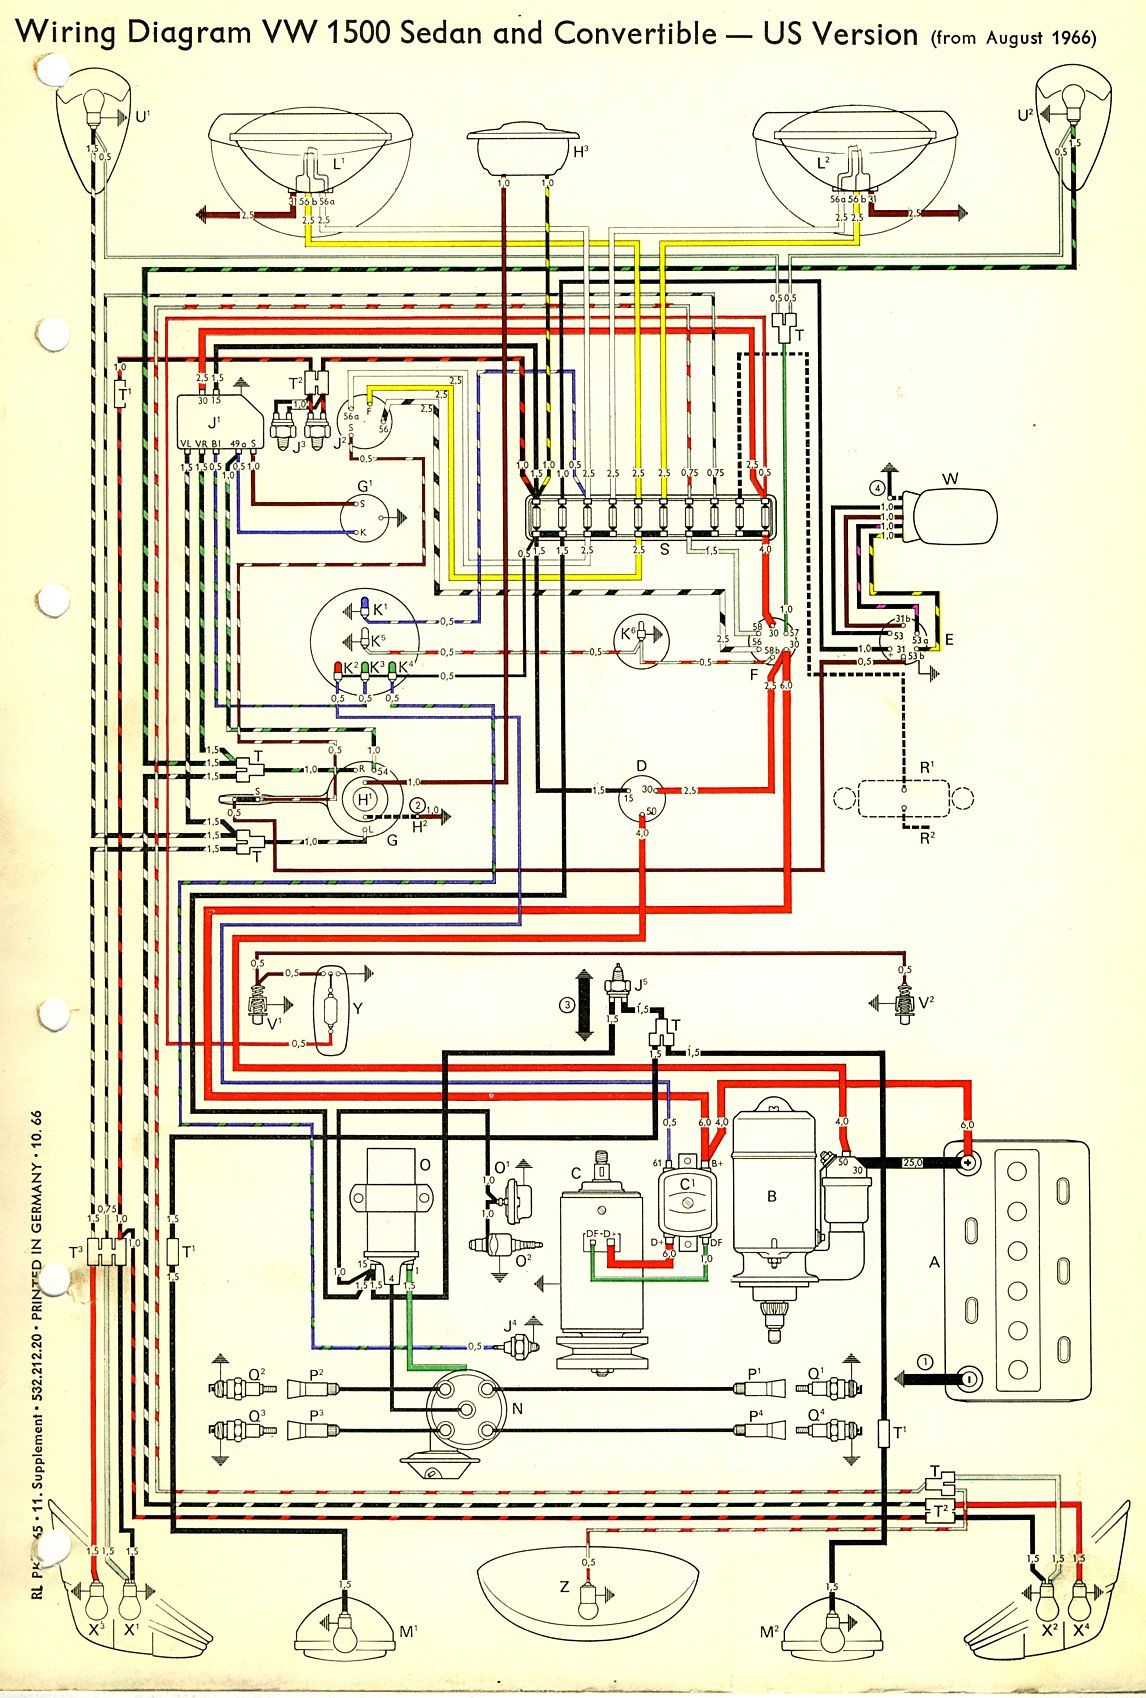 Vw Beetle Wiring | Wiring Diagram on 1957 vw wiring diagram, 1970 vw beetle wiring diagram, 1960 vw steering, 1960 vw headlights, 1960 vw fuel tank, 1960 vw engine, 67 vw wiring diagram, 1979 vw beetle wiring diagram, 1968 vw beetle wiring diagram, 1960 vw motor, 1973 vw wiring diagram, 1972 vw wiring diagram, 70 vw wiring diagram, 1969 vw wiring diagram,